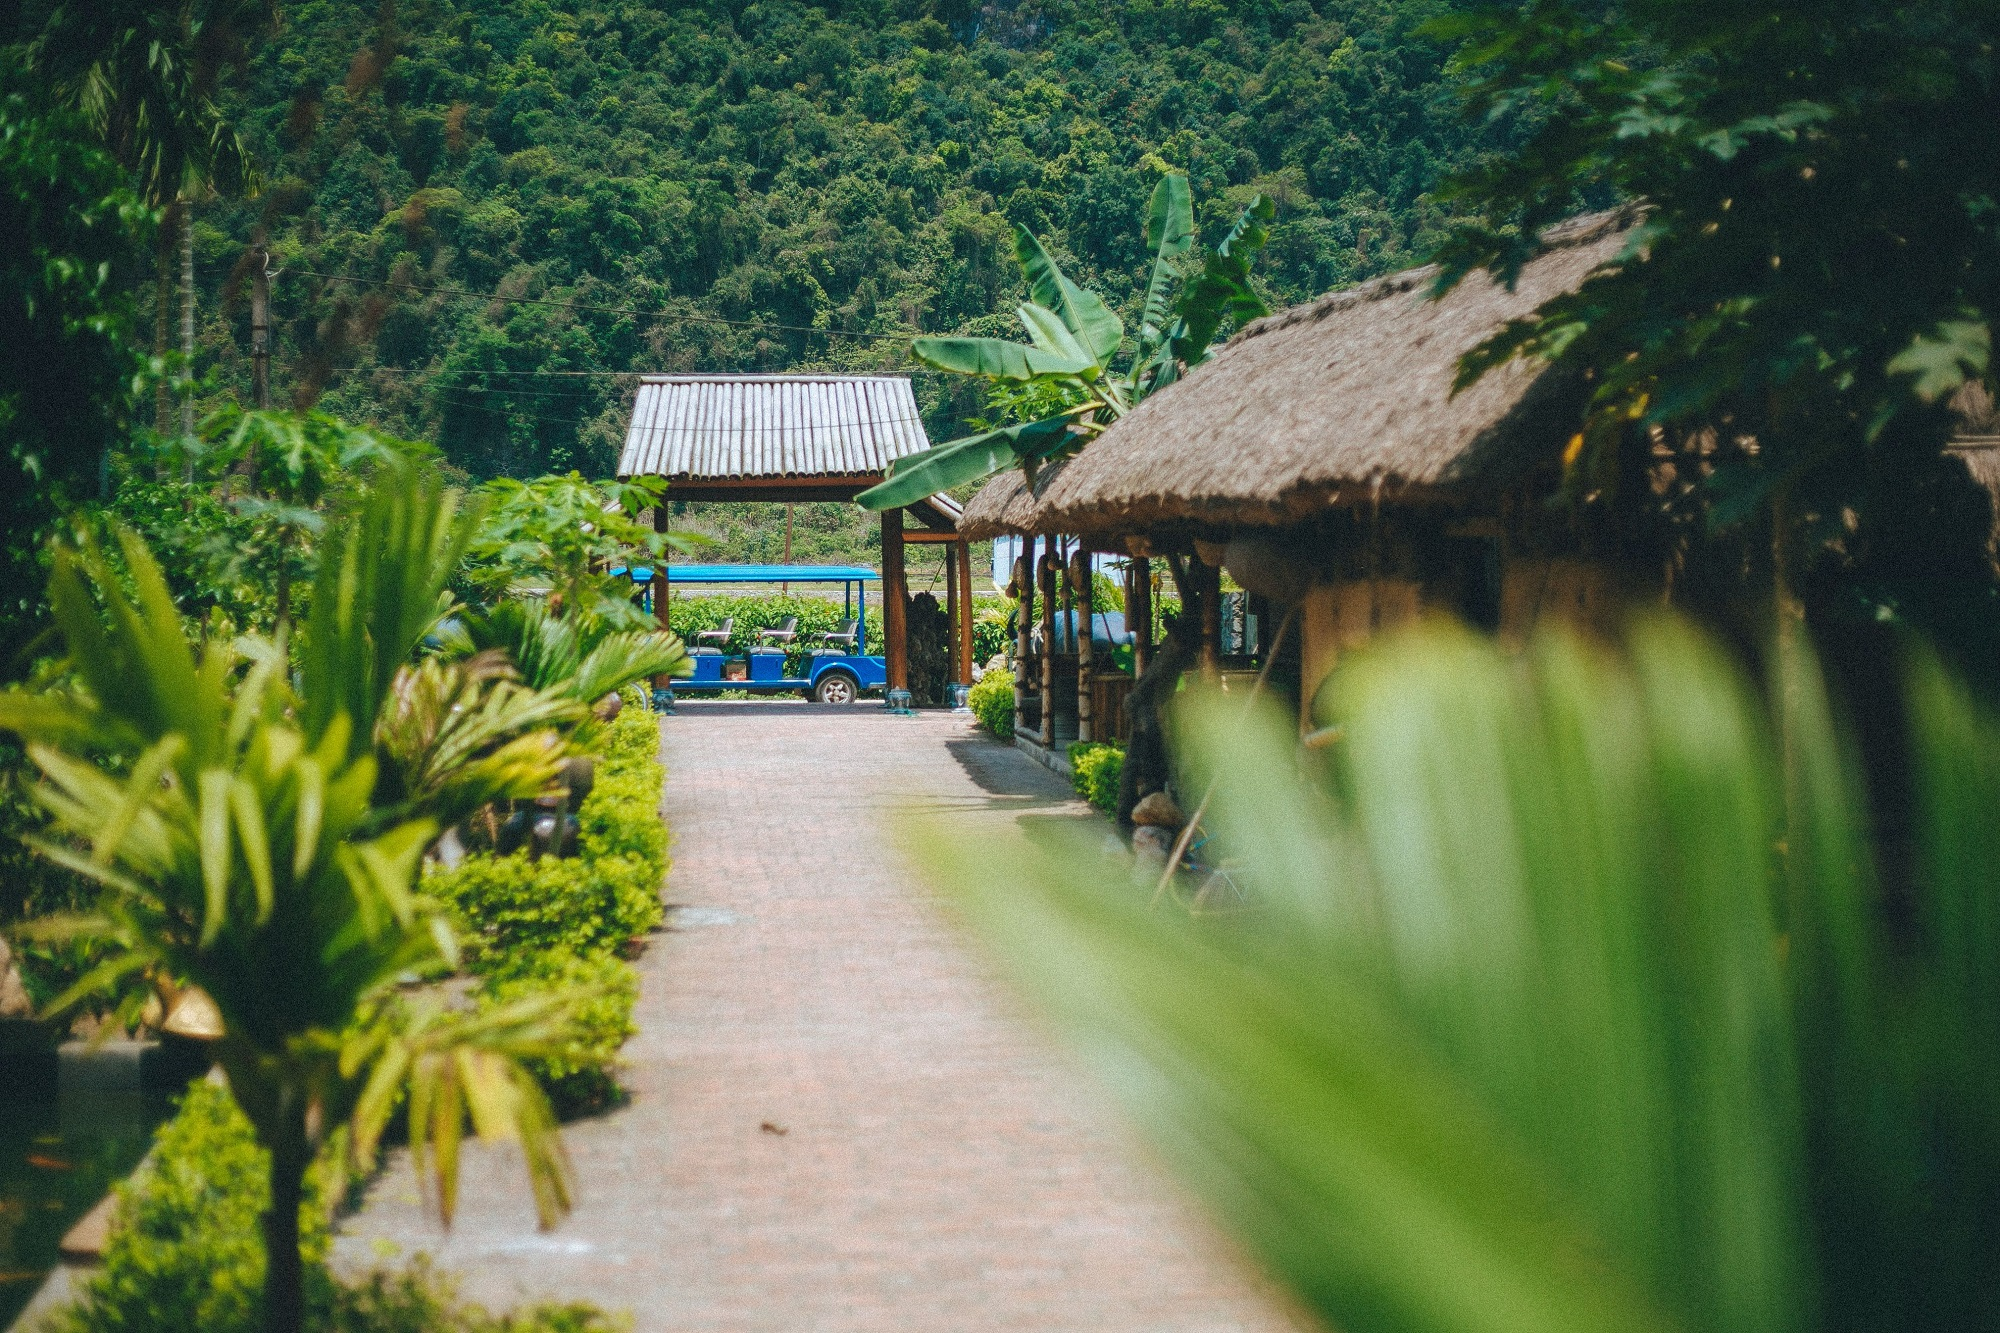 Viet Hai village - Things to do in Cat Ba